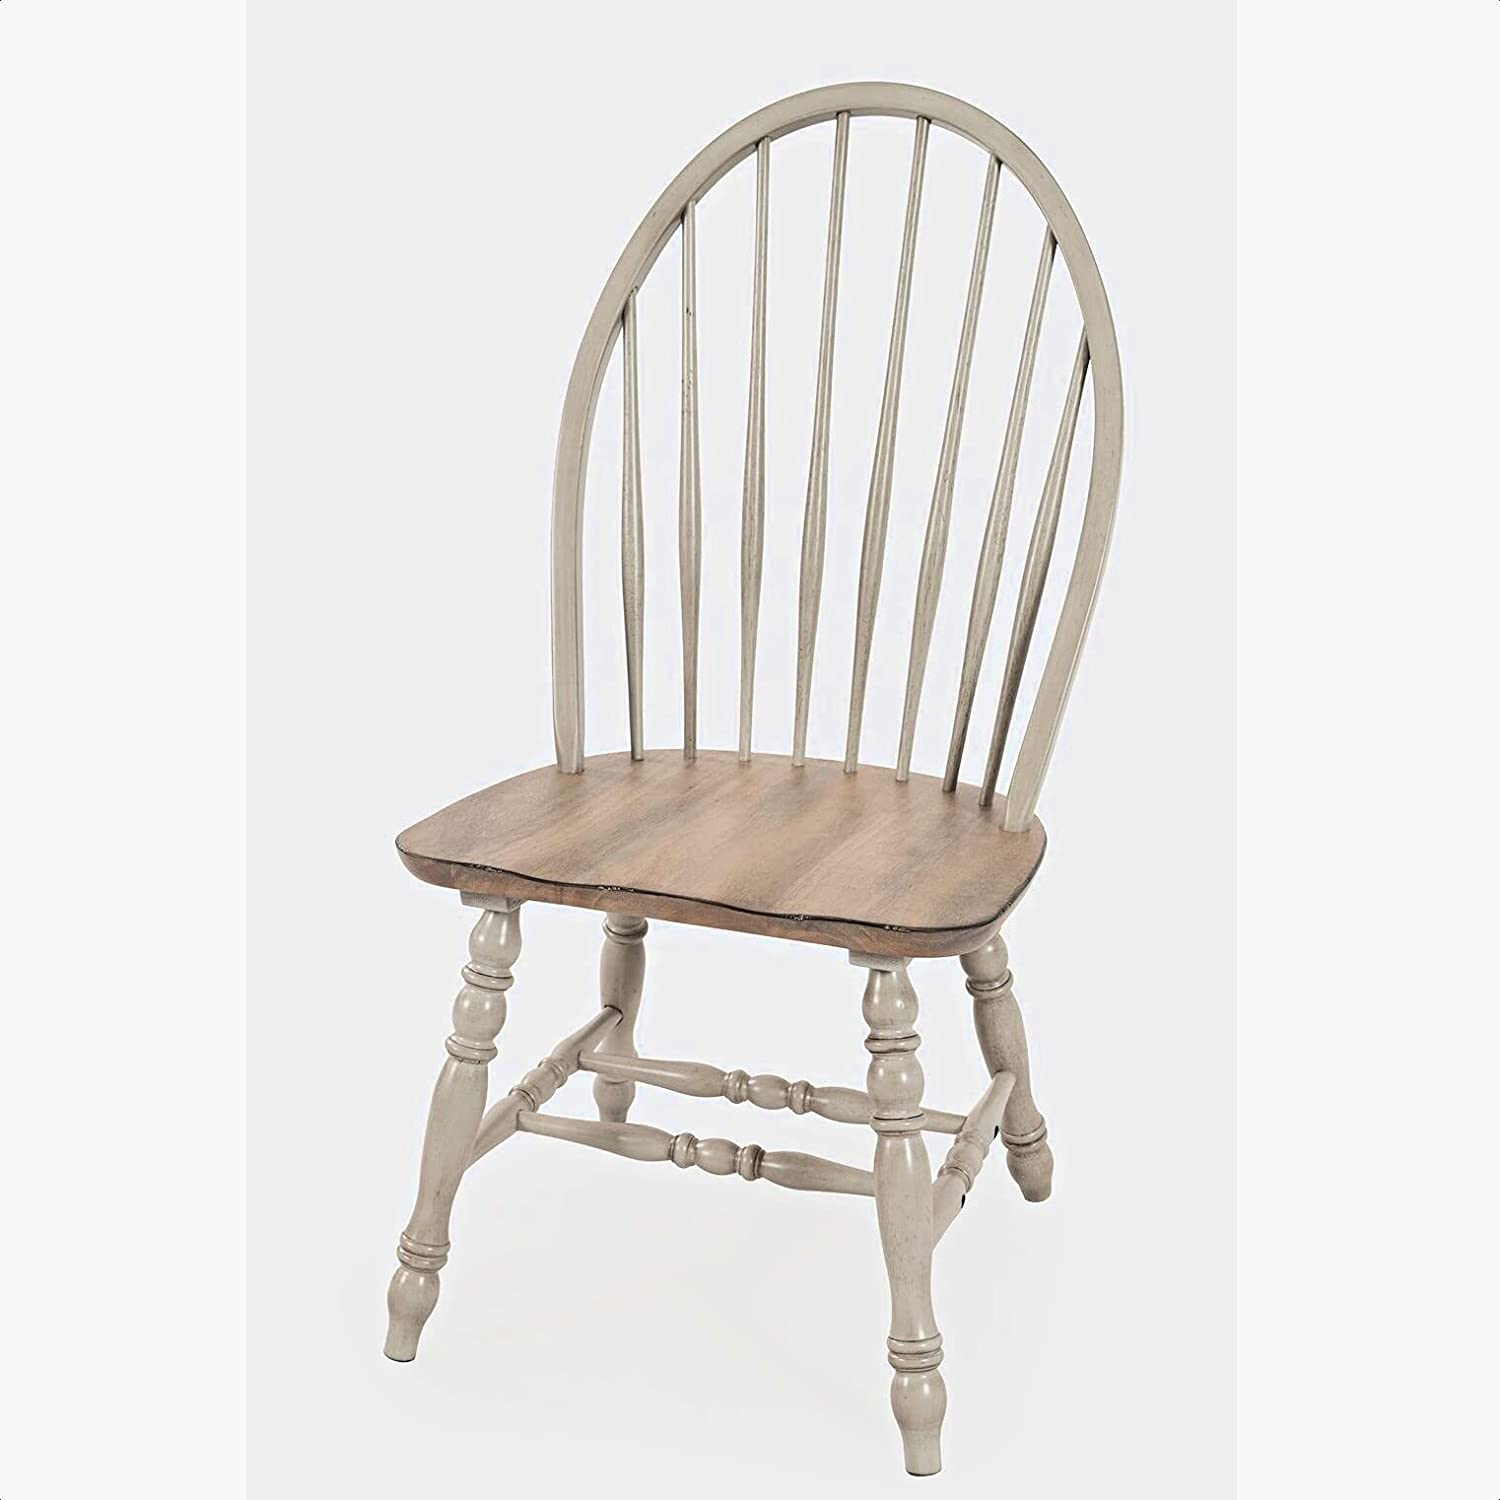 Ertac Solid Wood Finally popular brand Windsor Back Side Gray Overall: Chair in 40''' 2021 spring and summer new